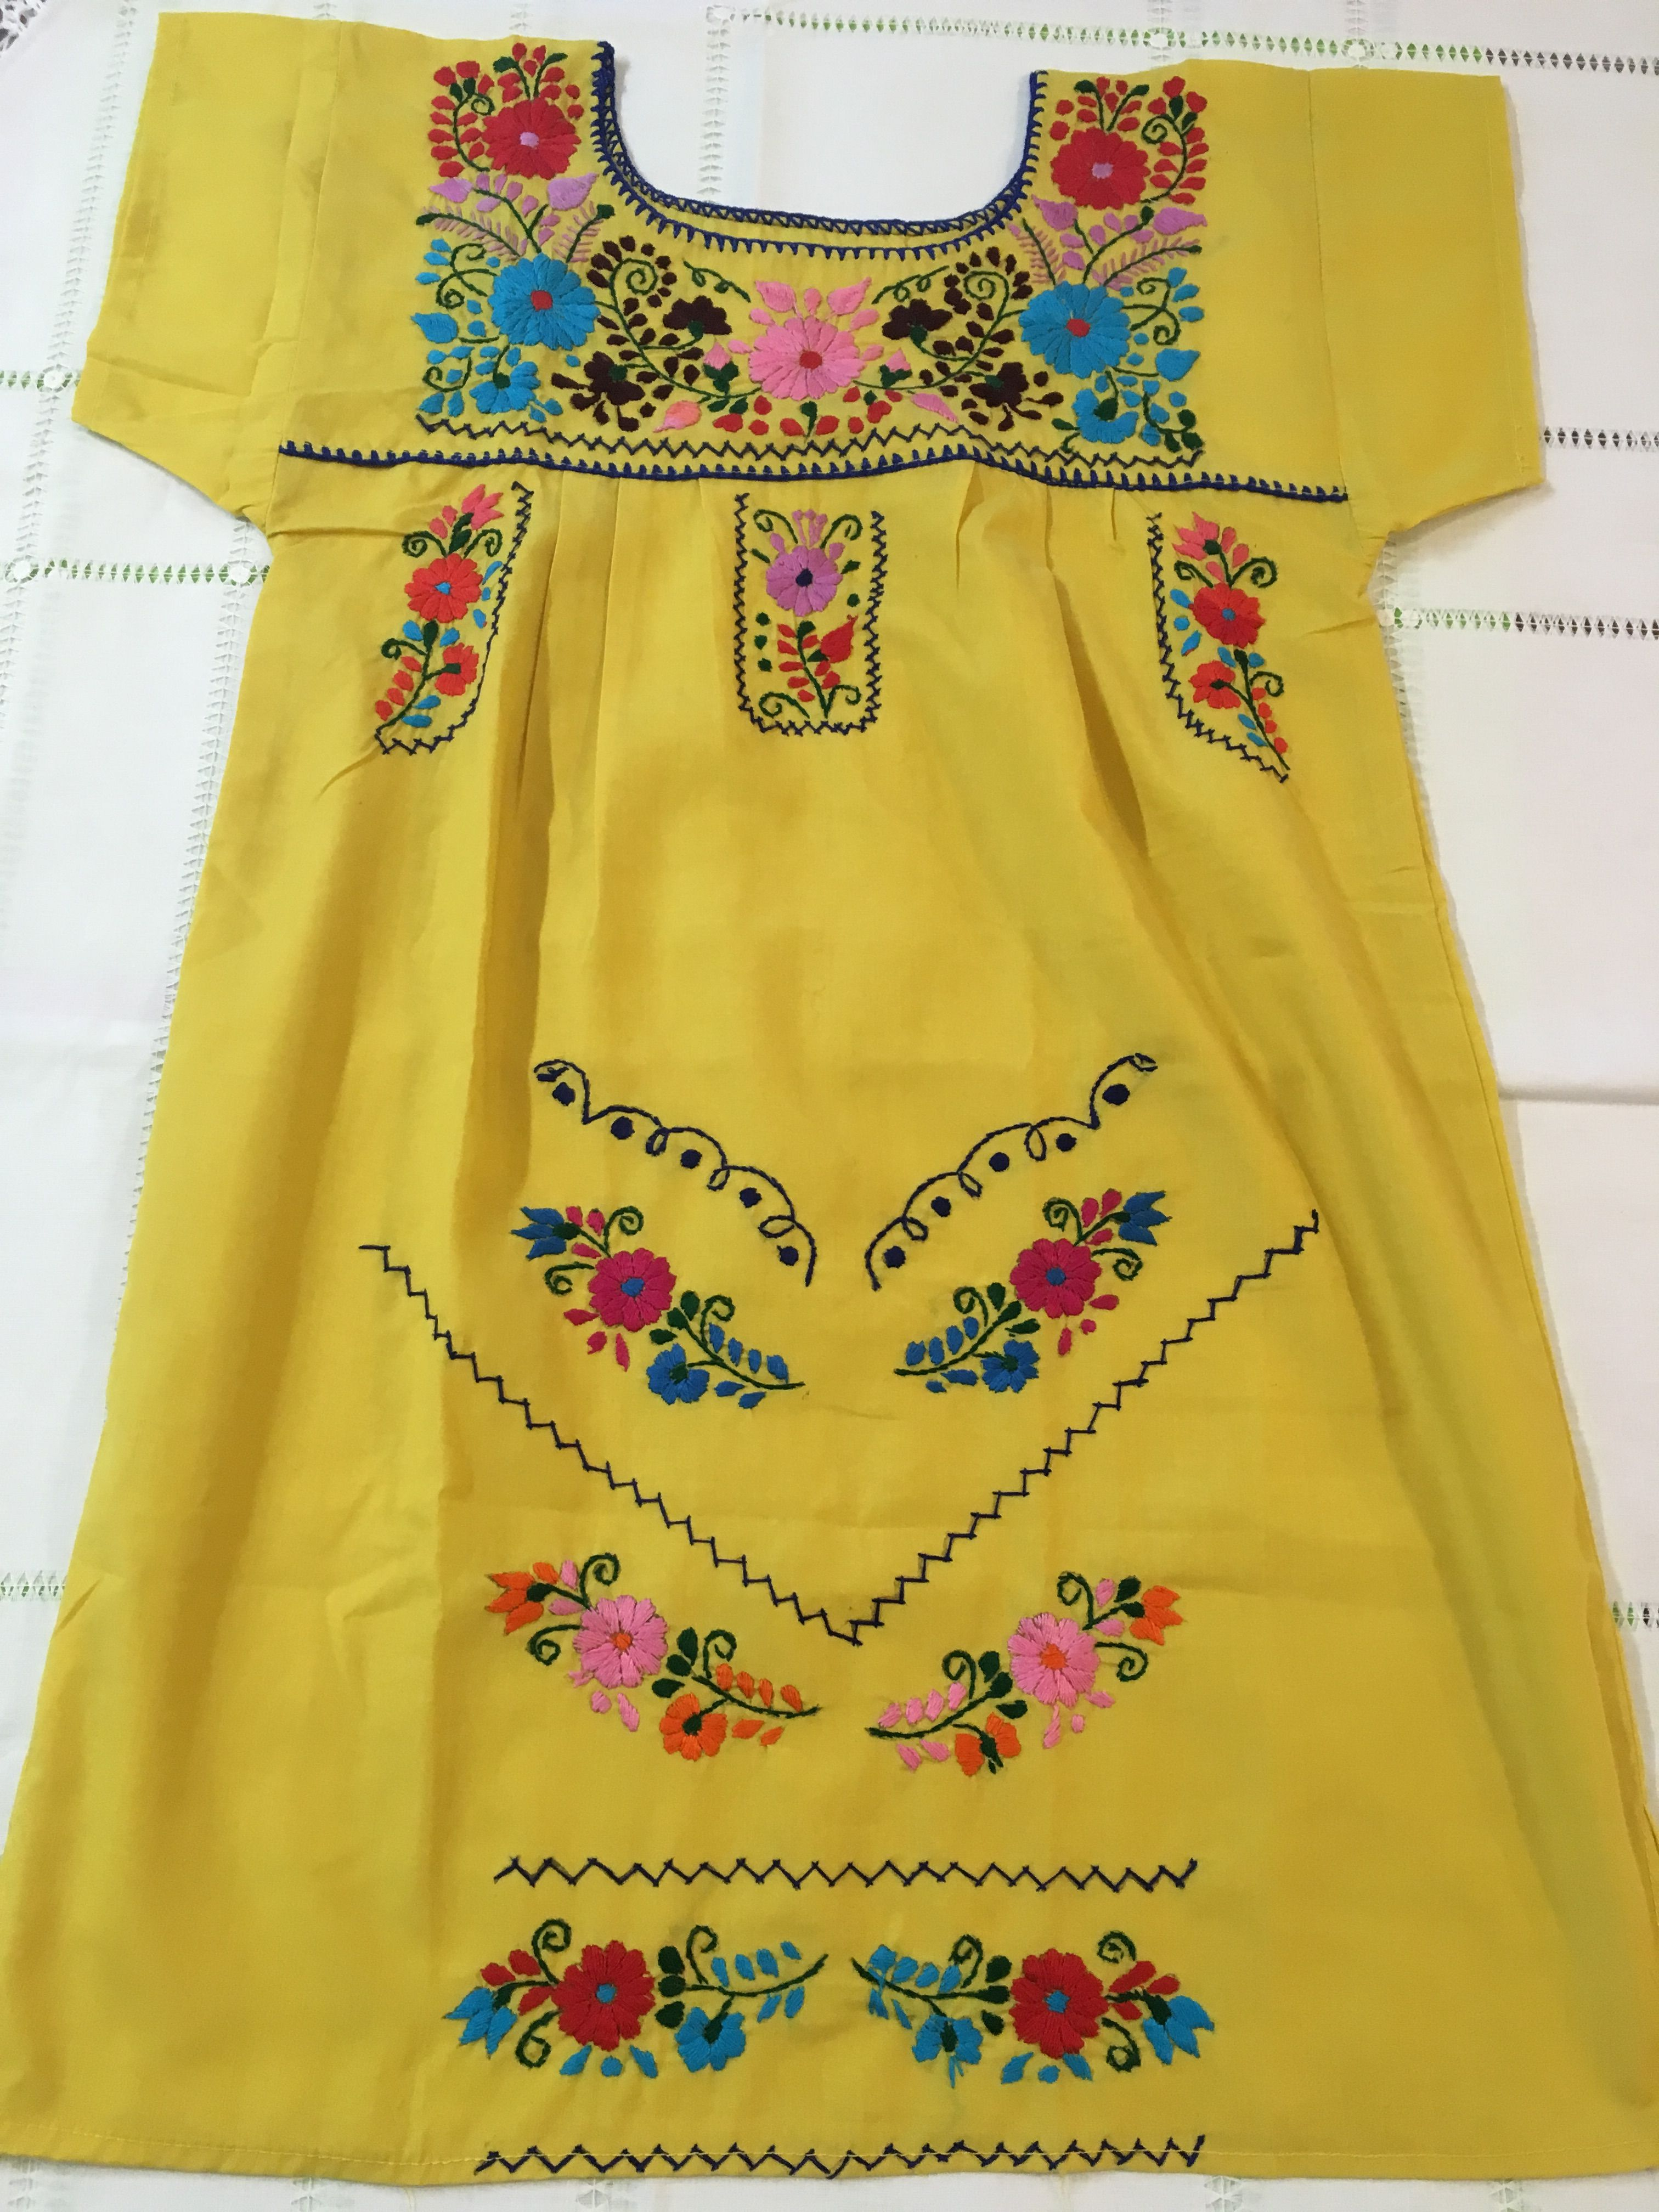 Gorgeous Handmade Mexican Dress Mexican Dresses Dresses Red Embroidery [ 4032 x 3024 Pixel ]